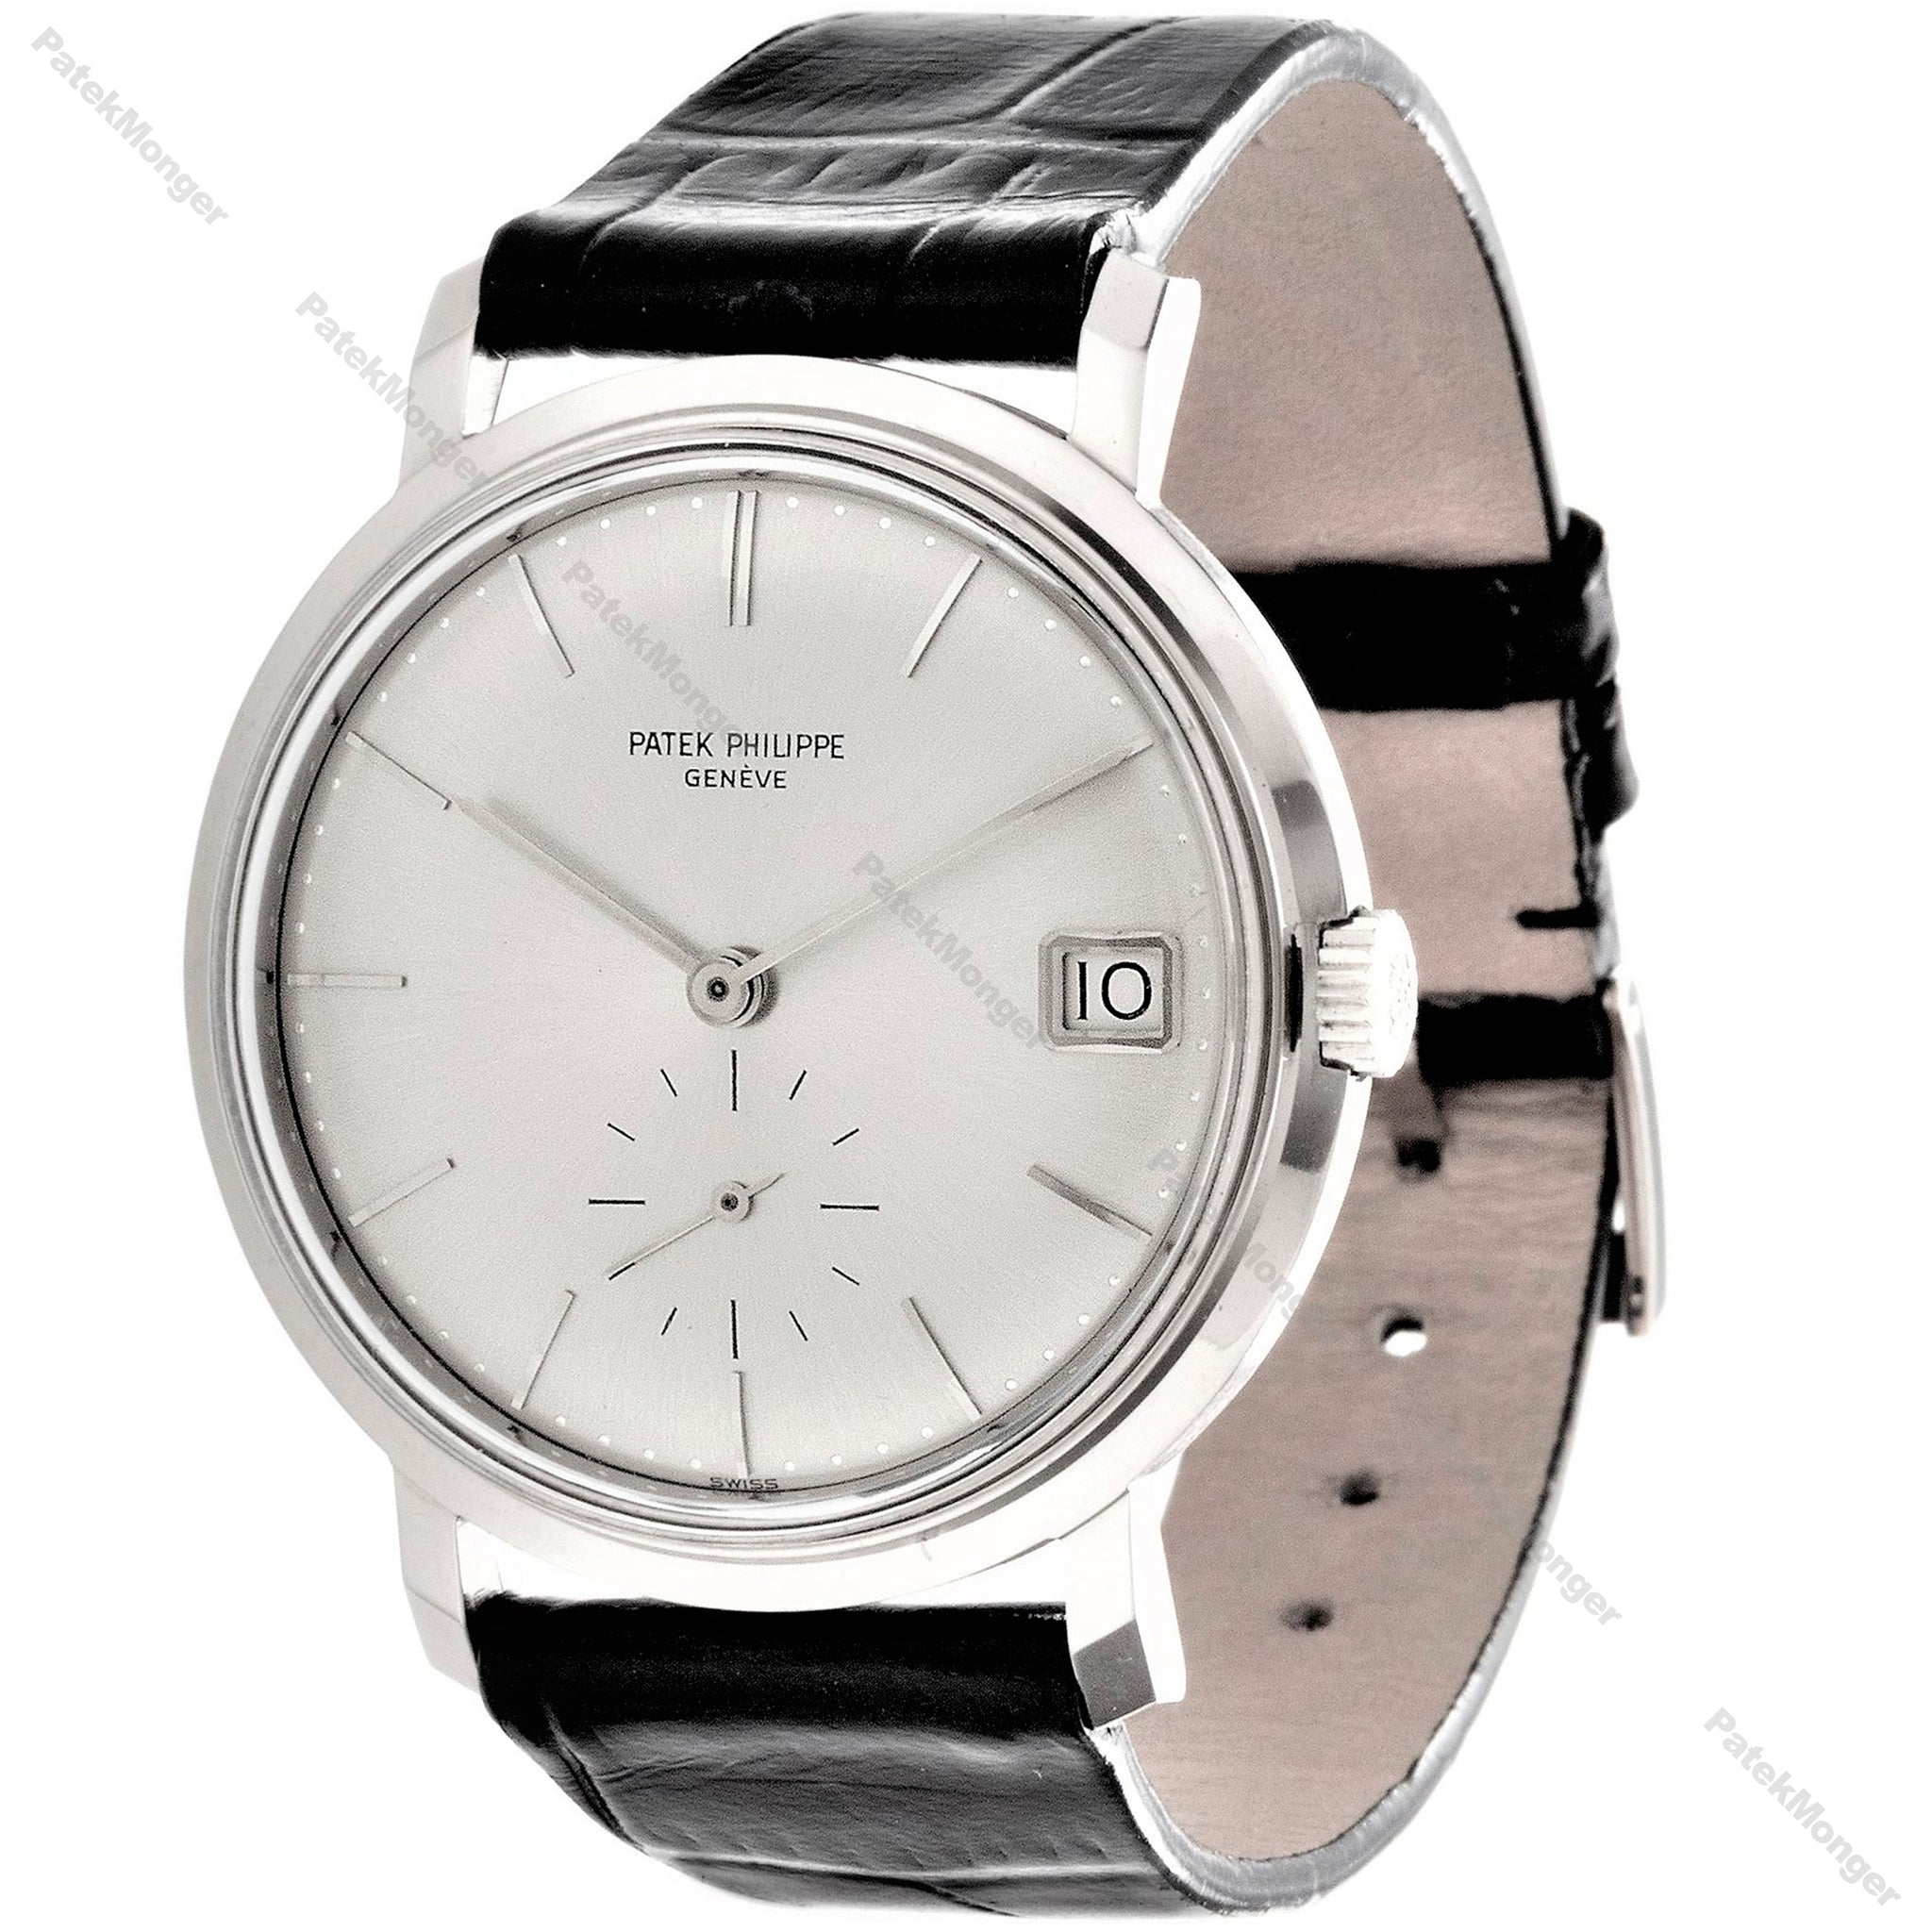 Patek Philippe 3445G Automatic Self Winding Watch